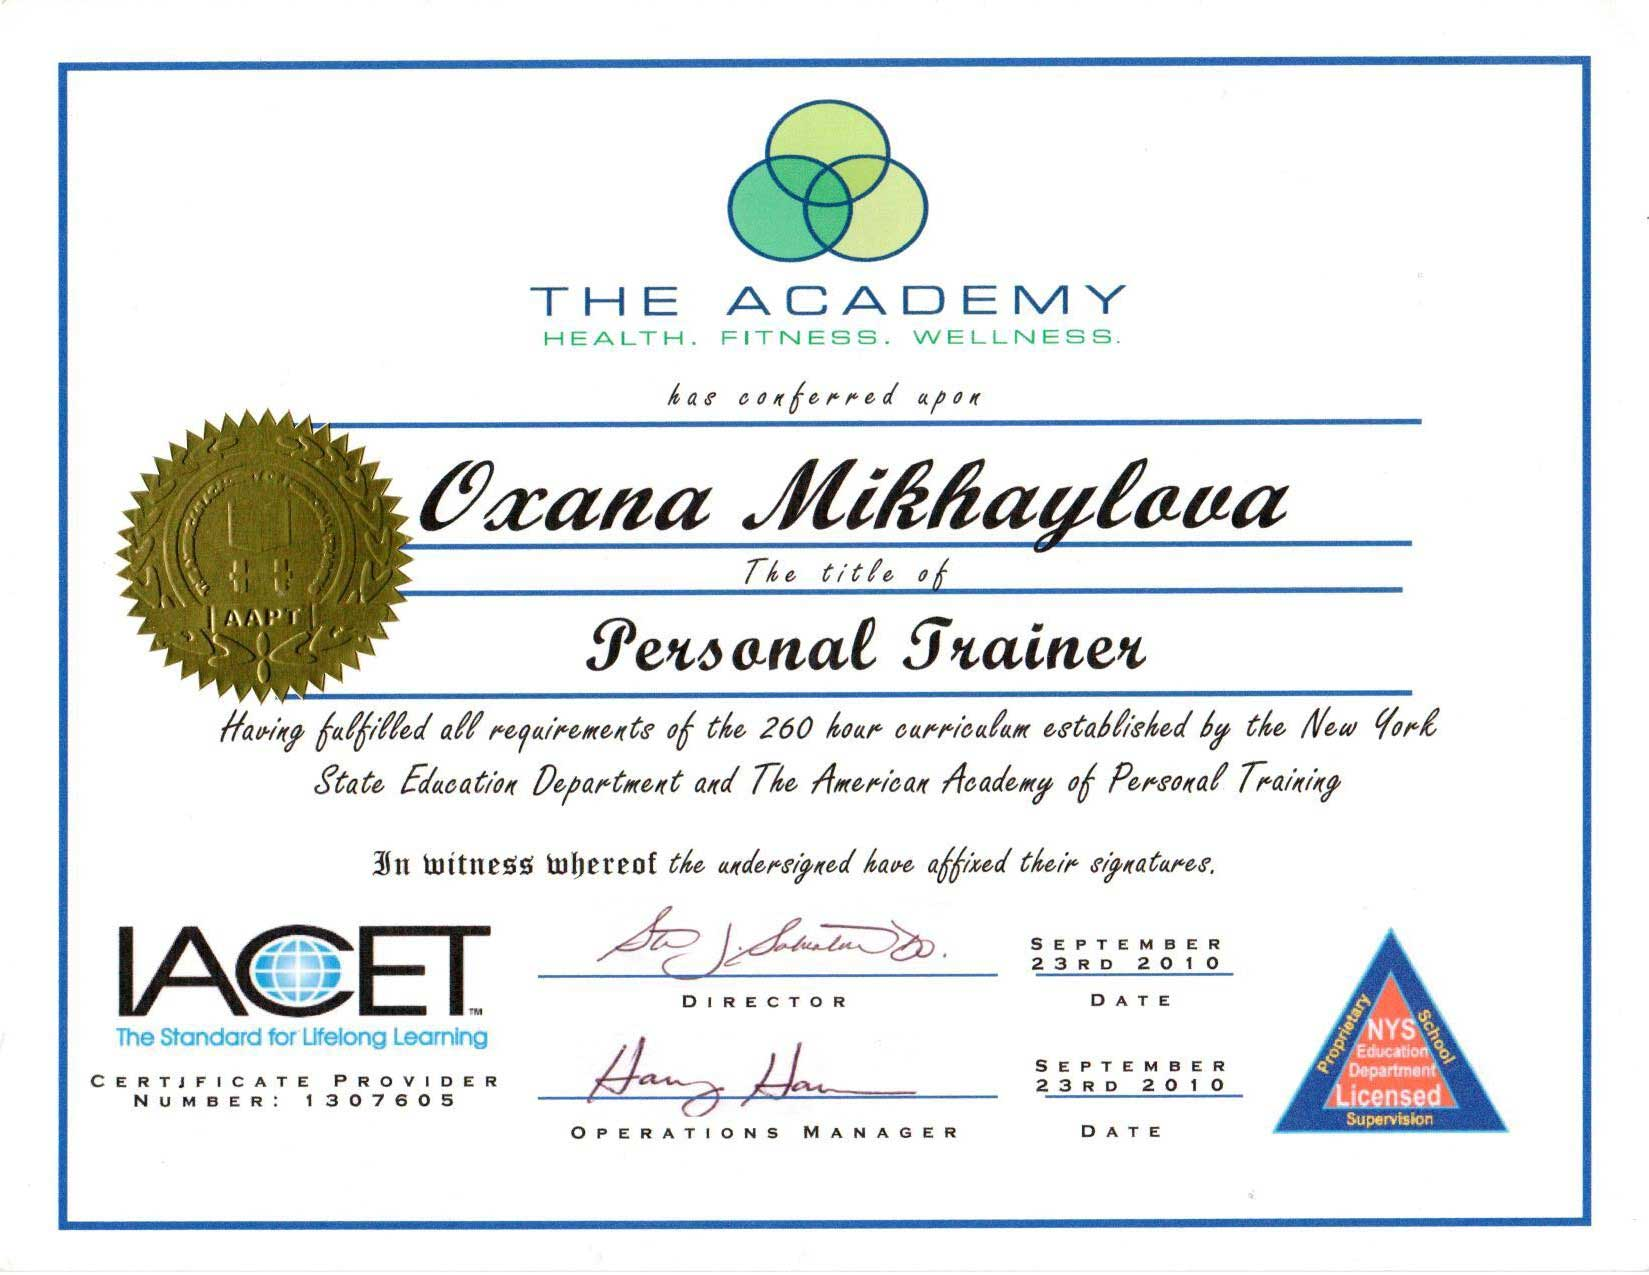 Credentials train with oxana certifications 1betcityfo Choice Image